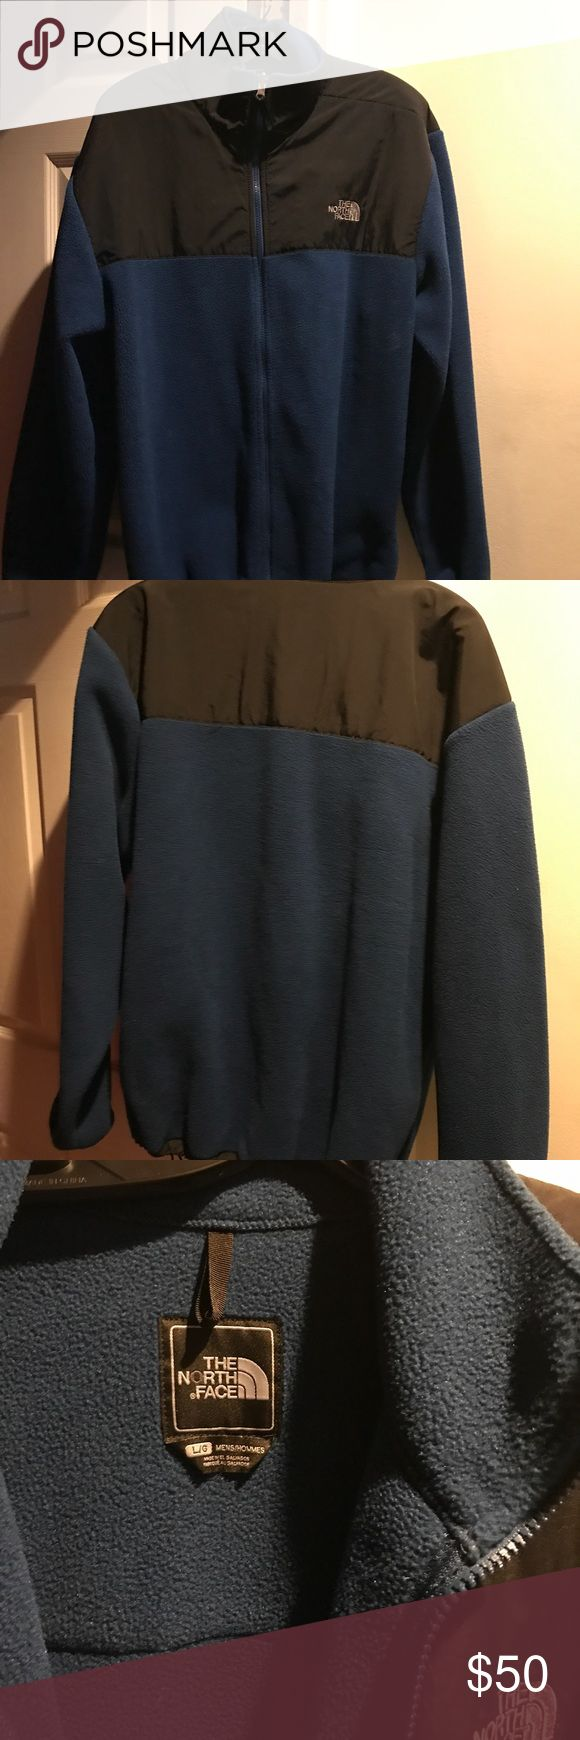 Authentic Blue/Black North Face L/G Mens Jacket Authentic blue / Black North Face Hommes L/G  men's jacket. In good condition. North Face Jackets & Coats